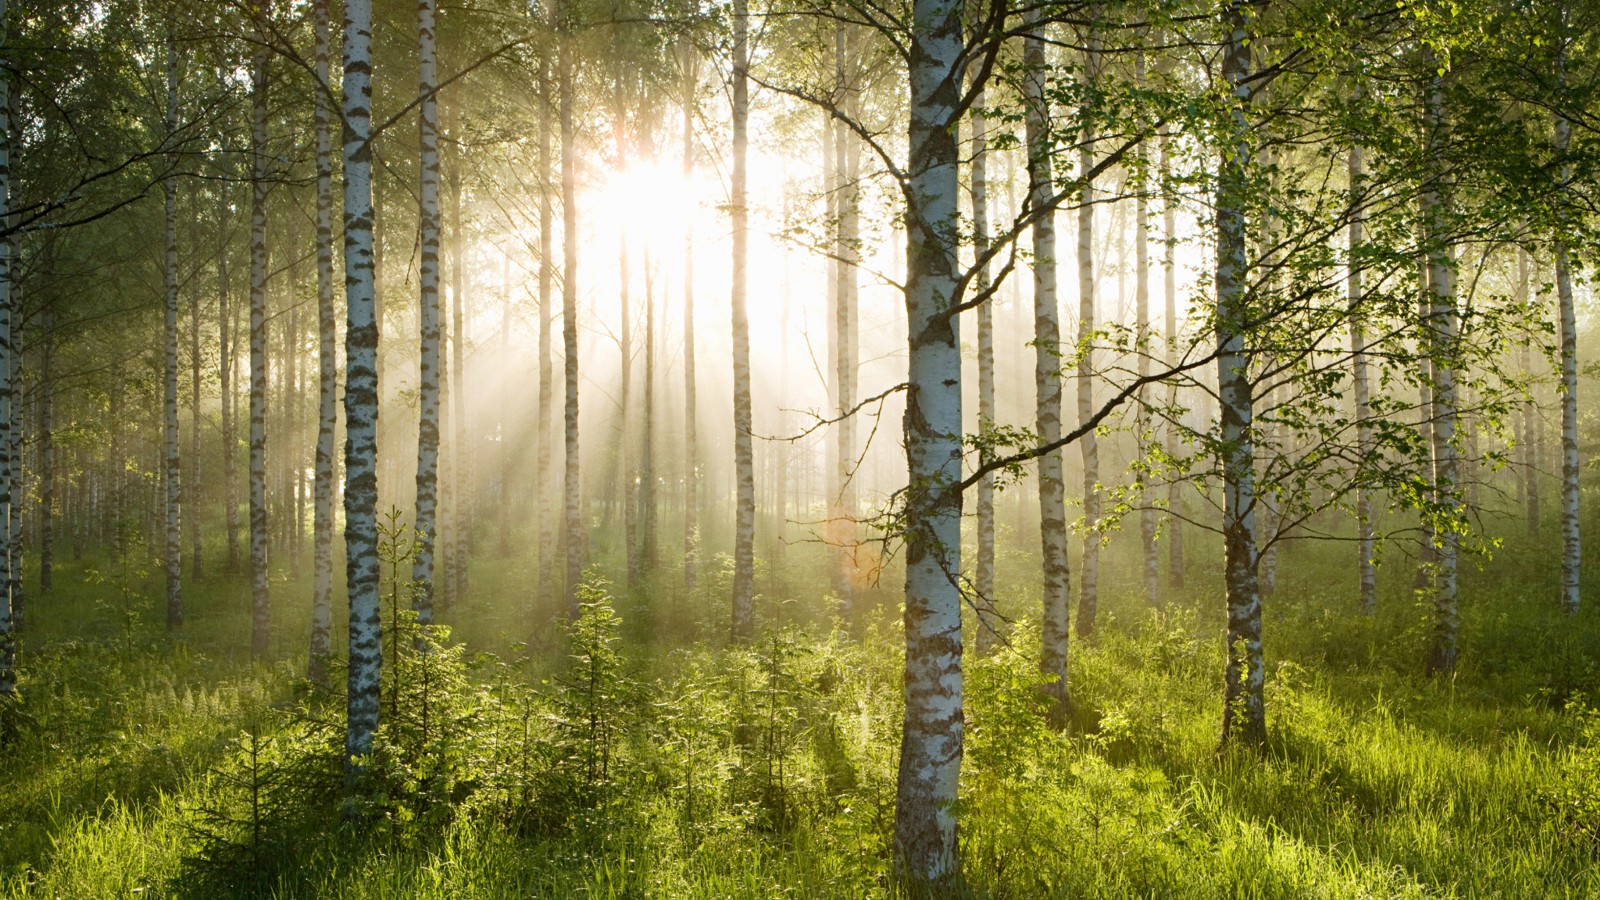 Sunlight in a forest of birch trees